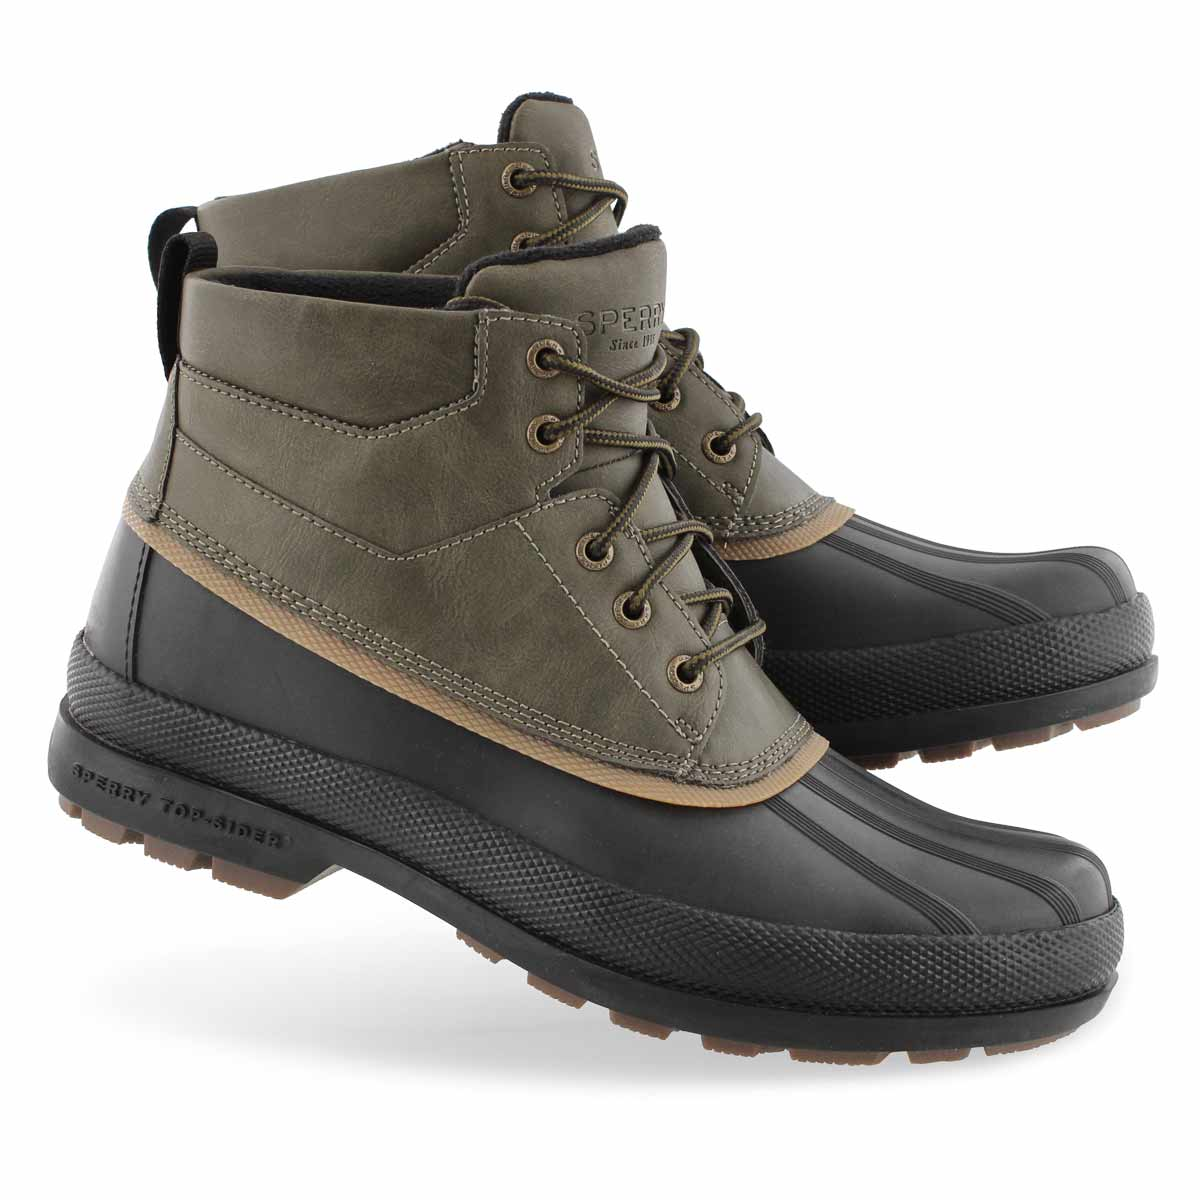 Sperry Men's COLD BAY CHUKKA olive/blk